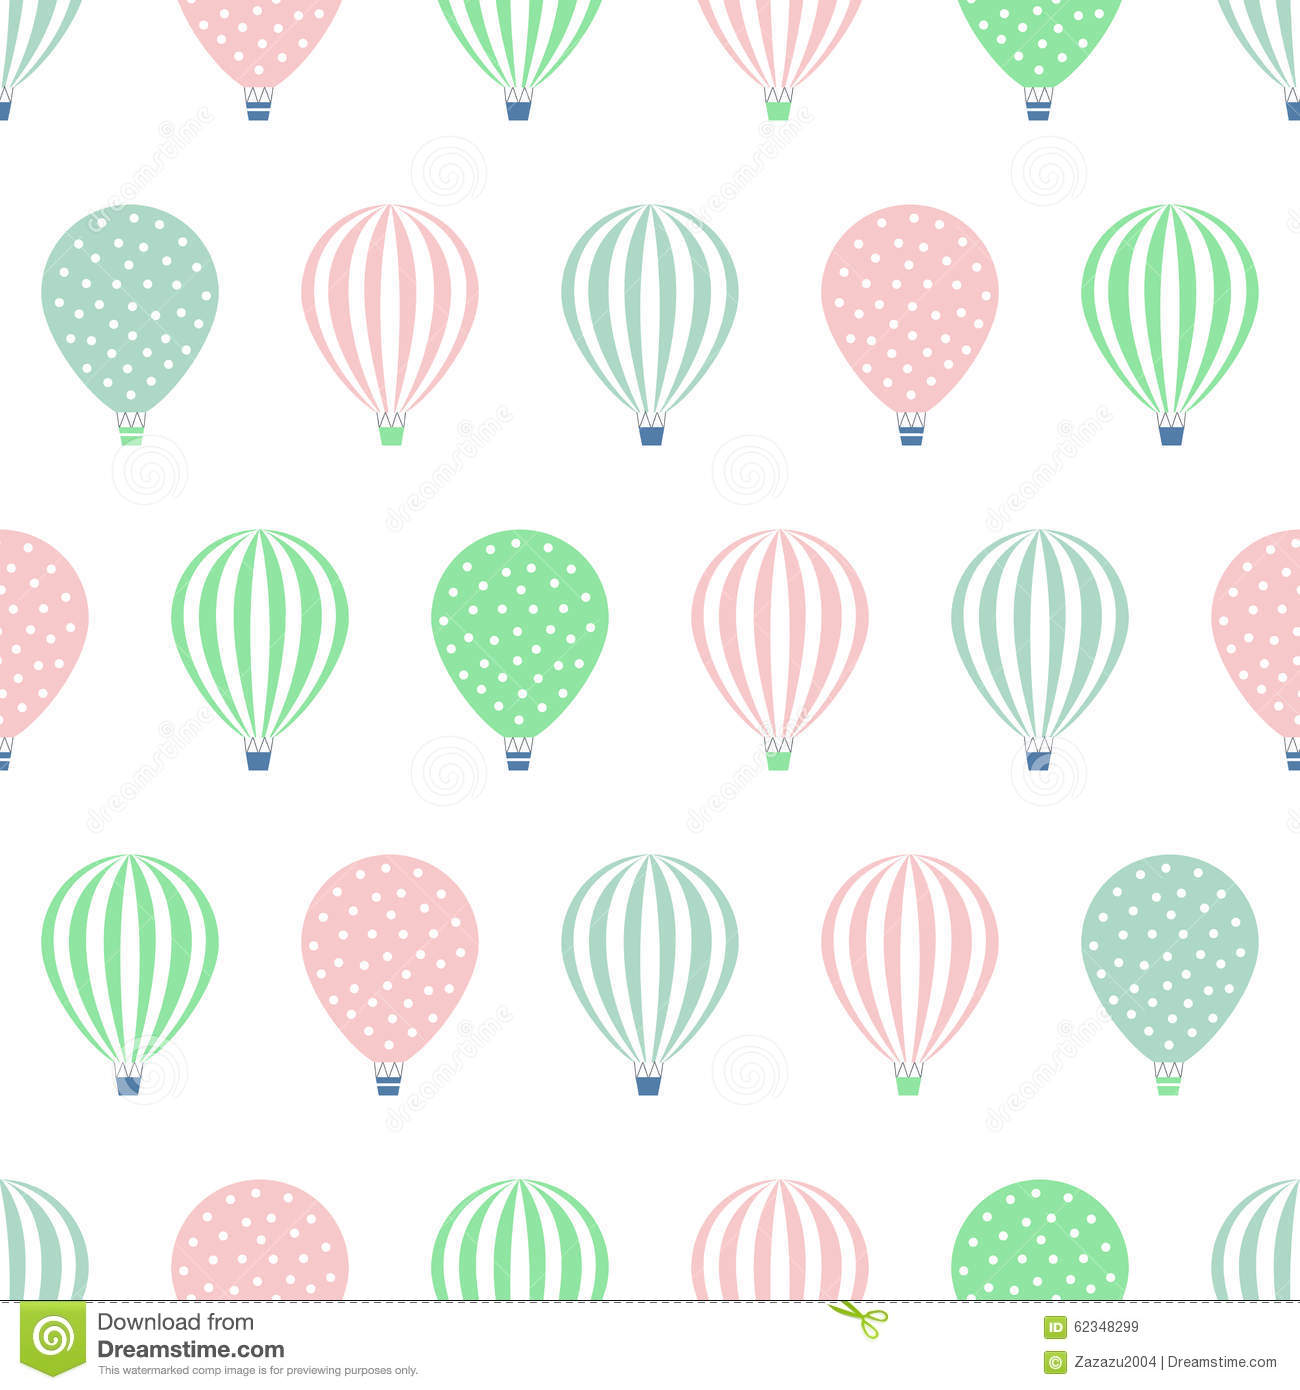 Pastel Balloon Iphone 5 Wallpaper